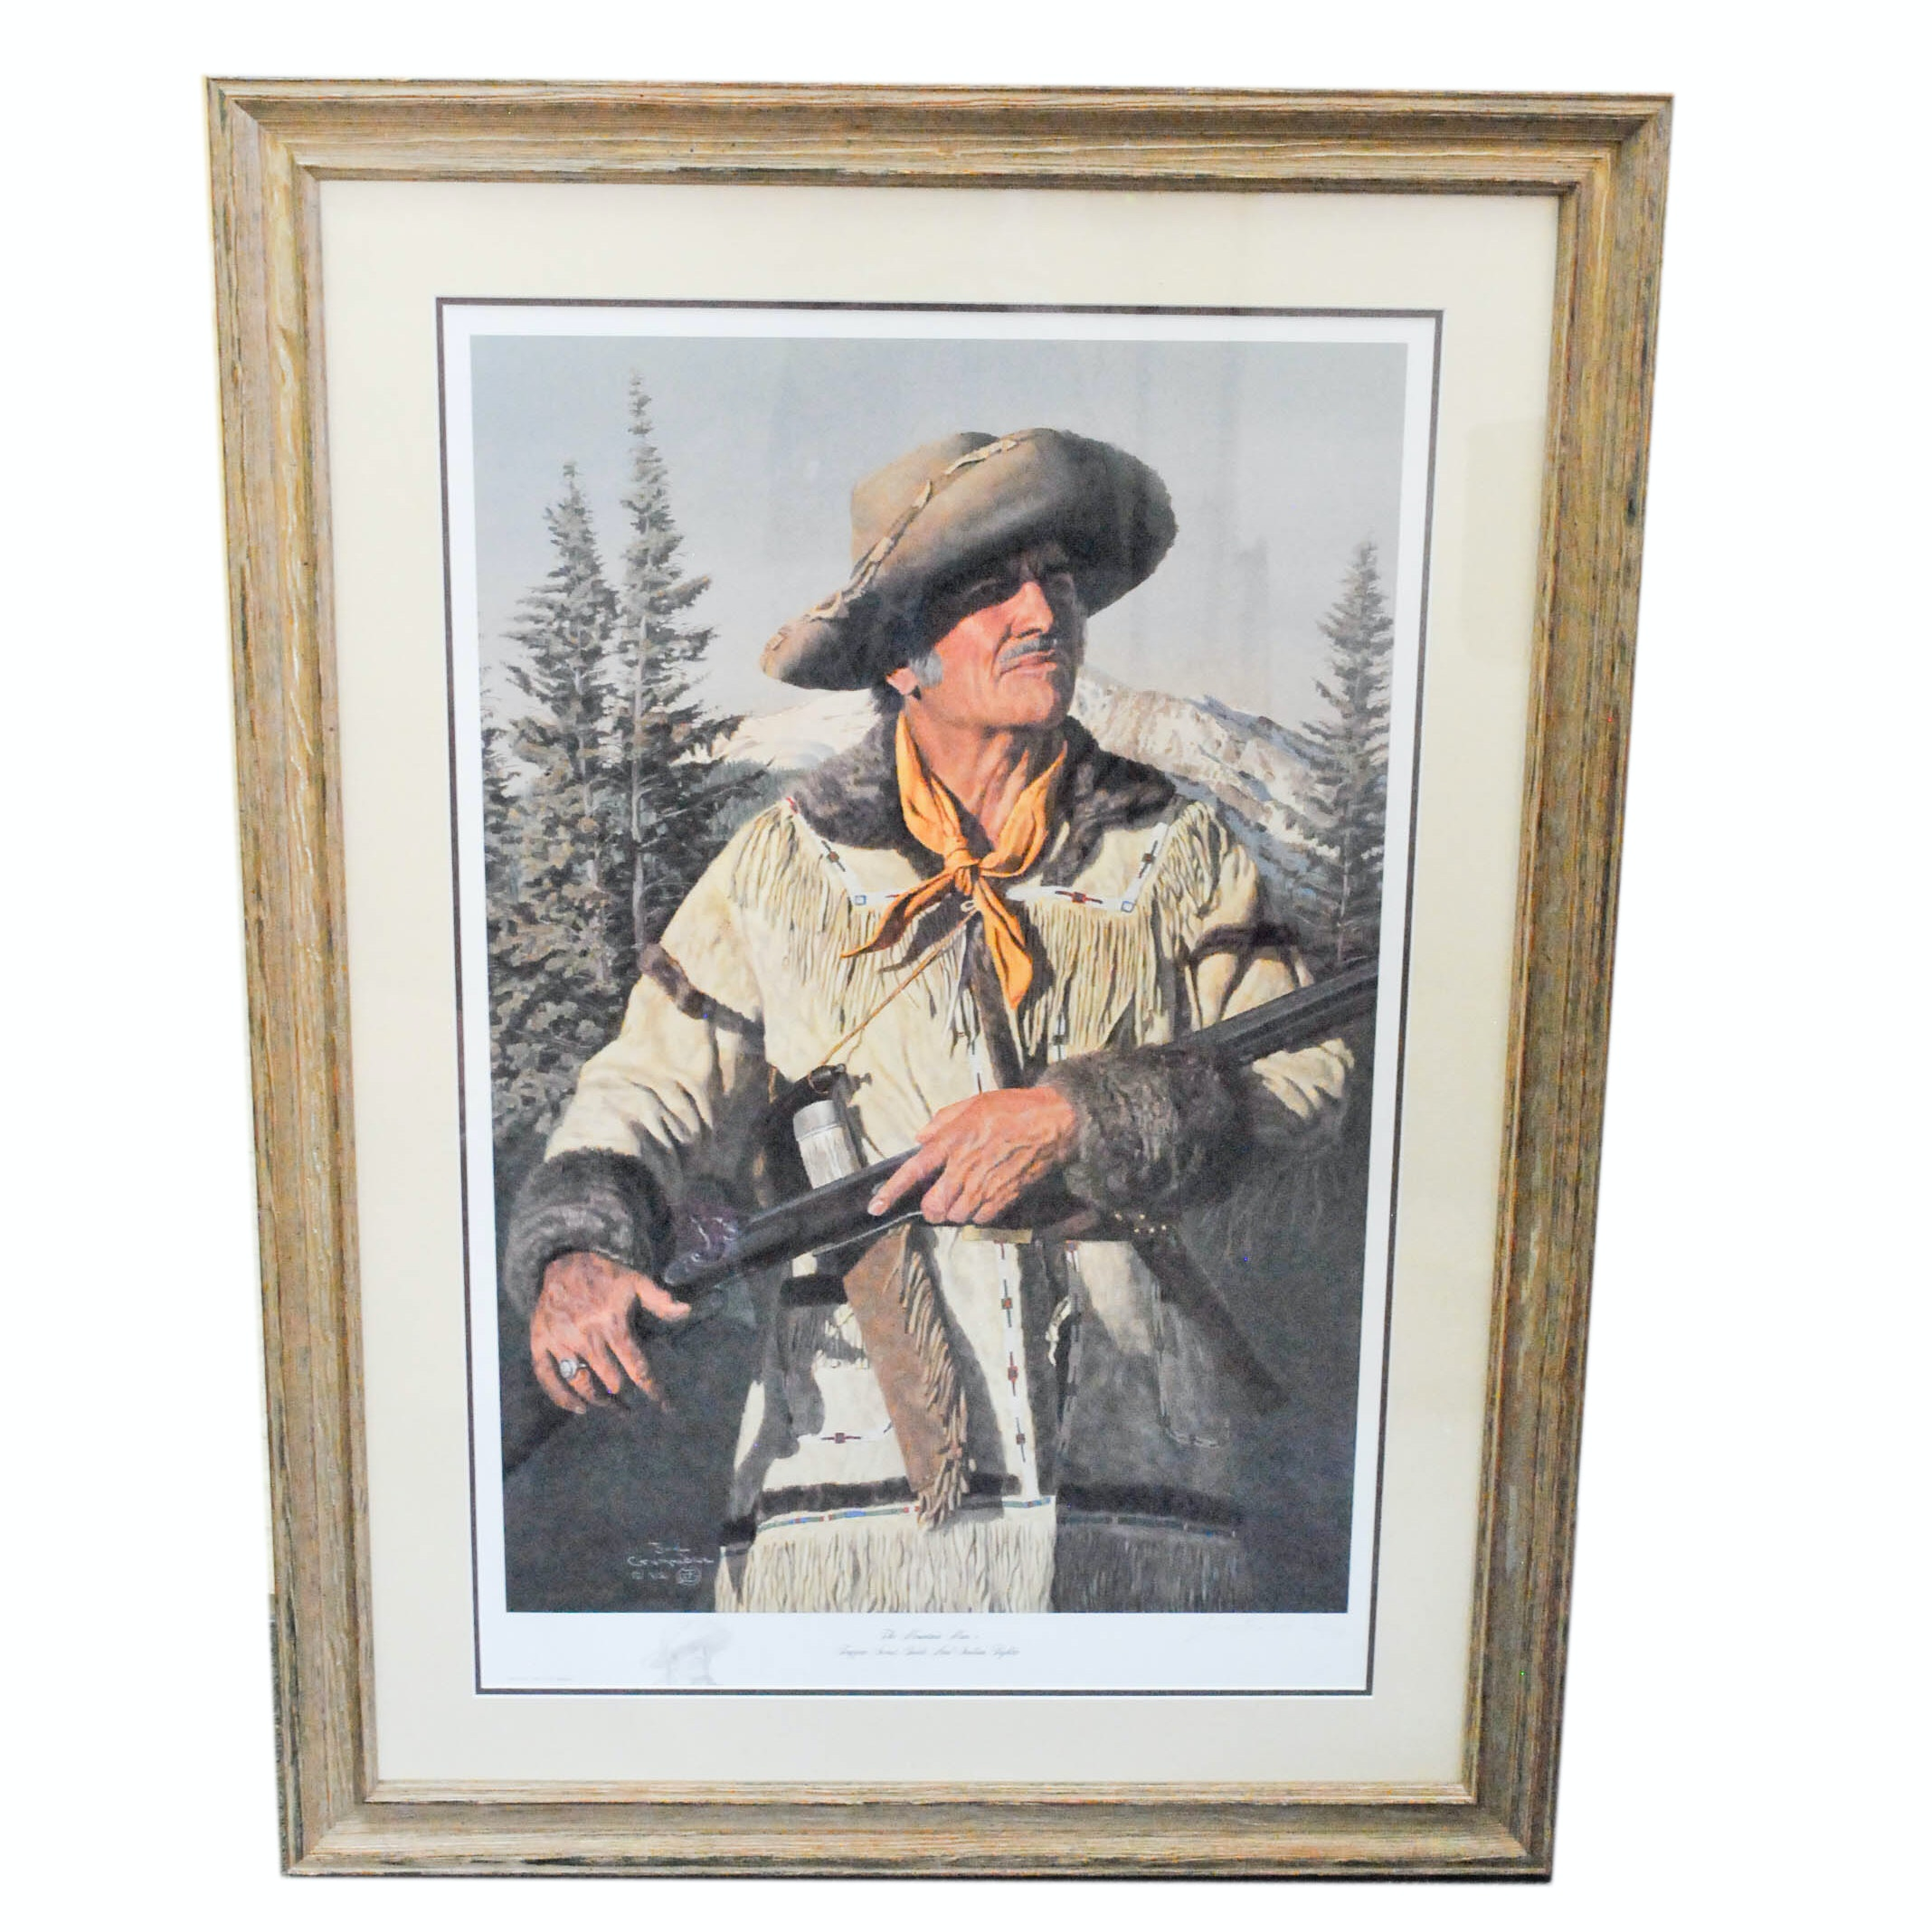 "After Joe Grandee Offset Lithograph ""The Mountain Man"" Print"